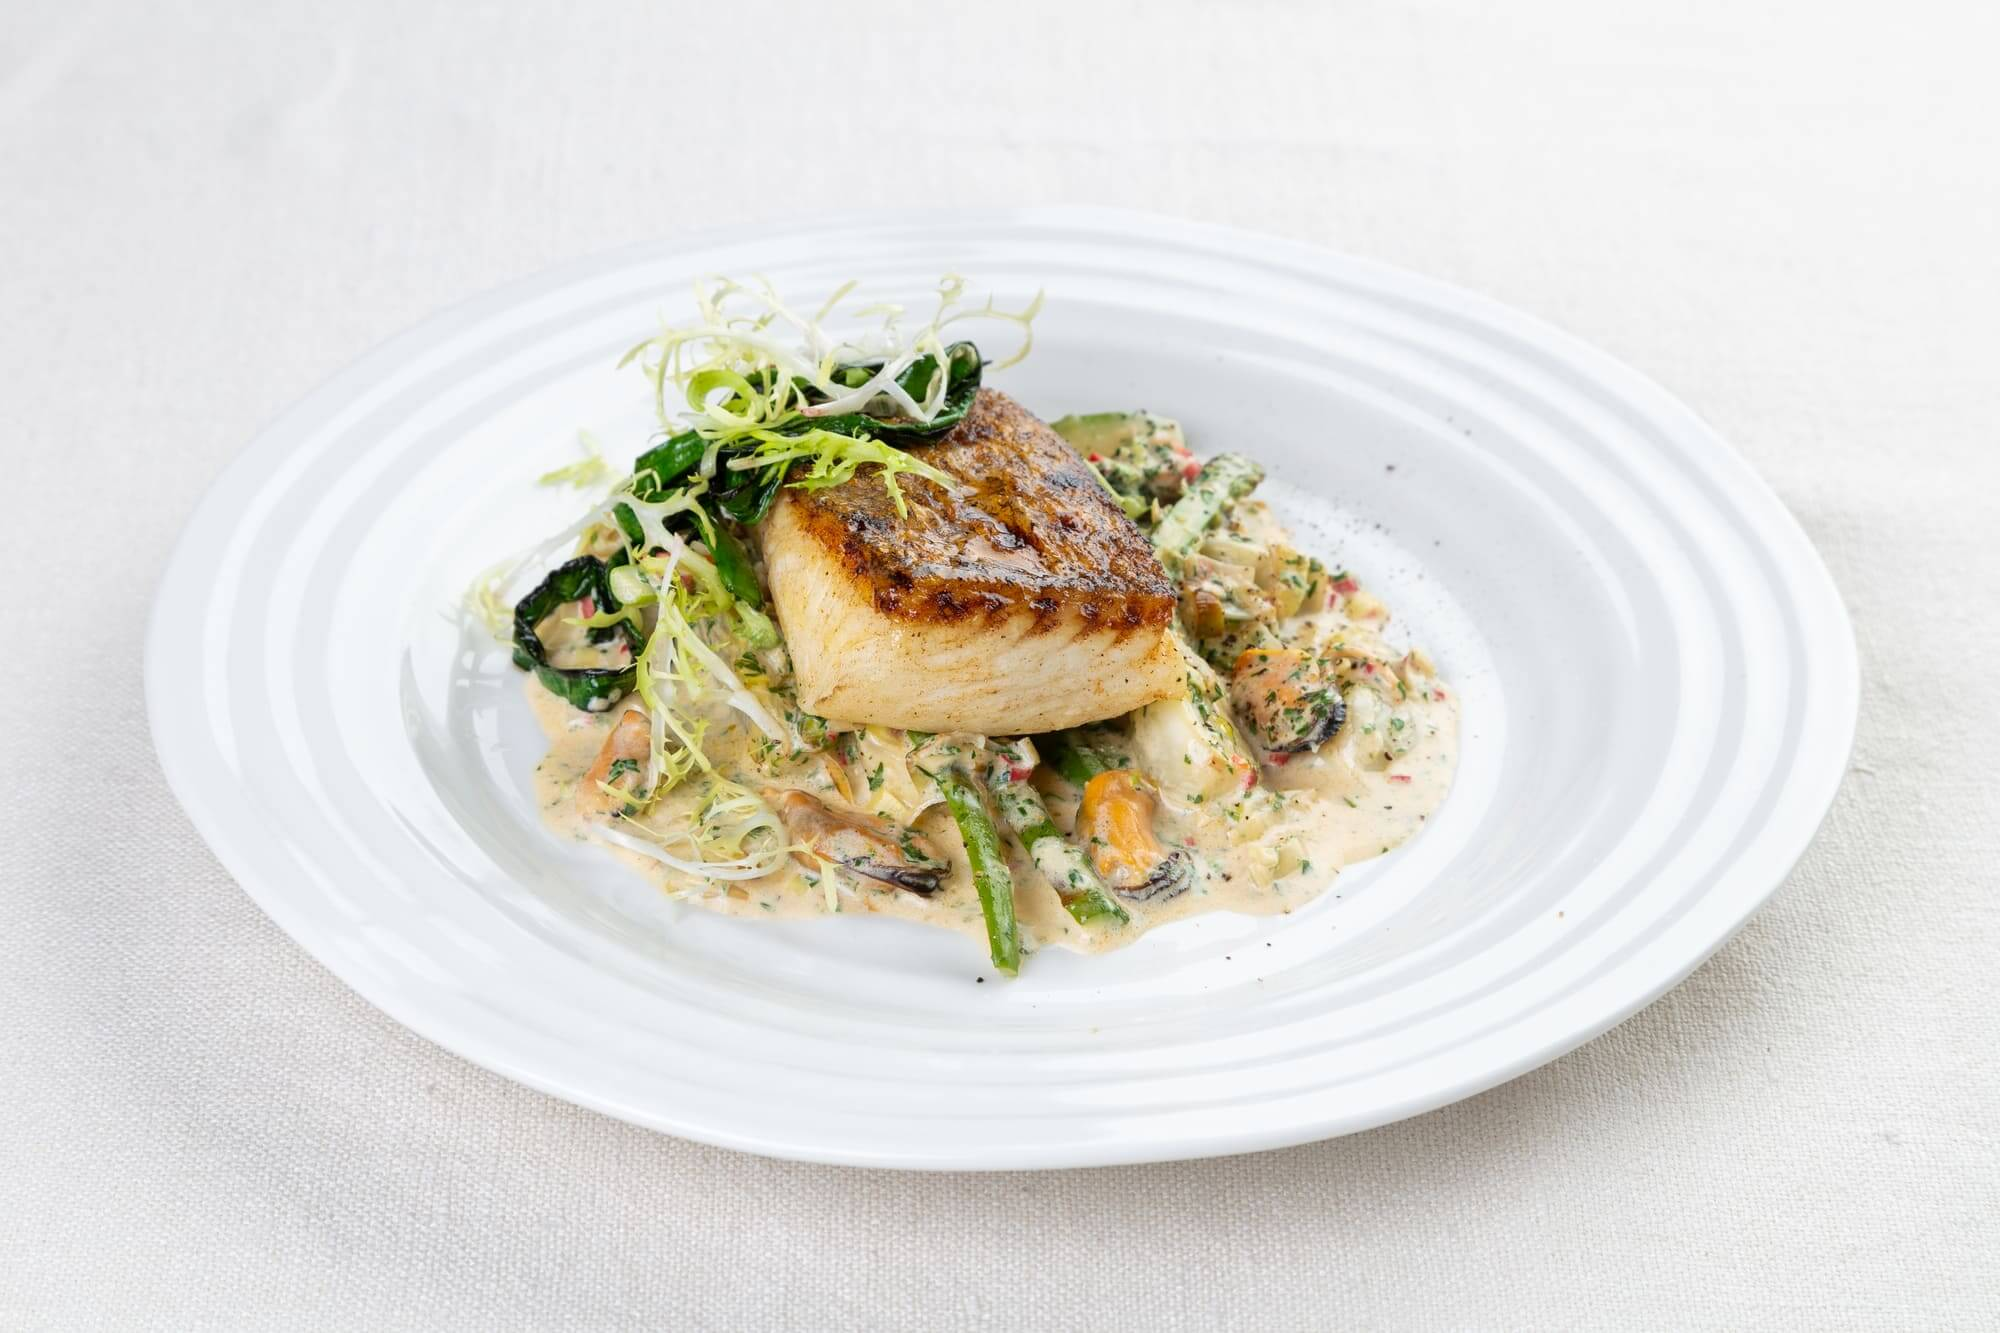 Halibut with fennel and mussel sauce